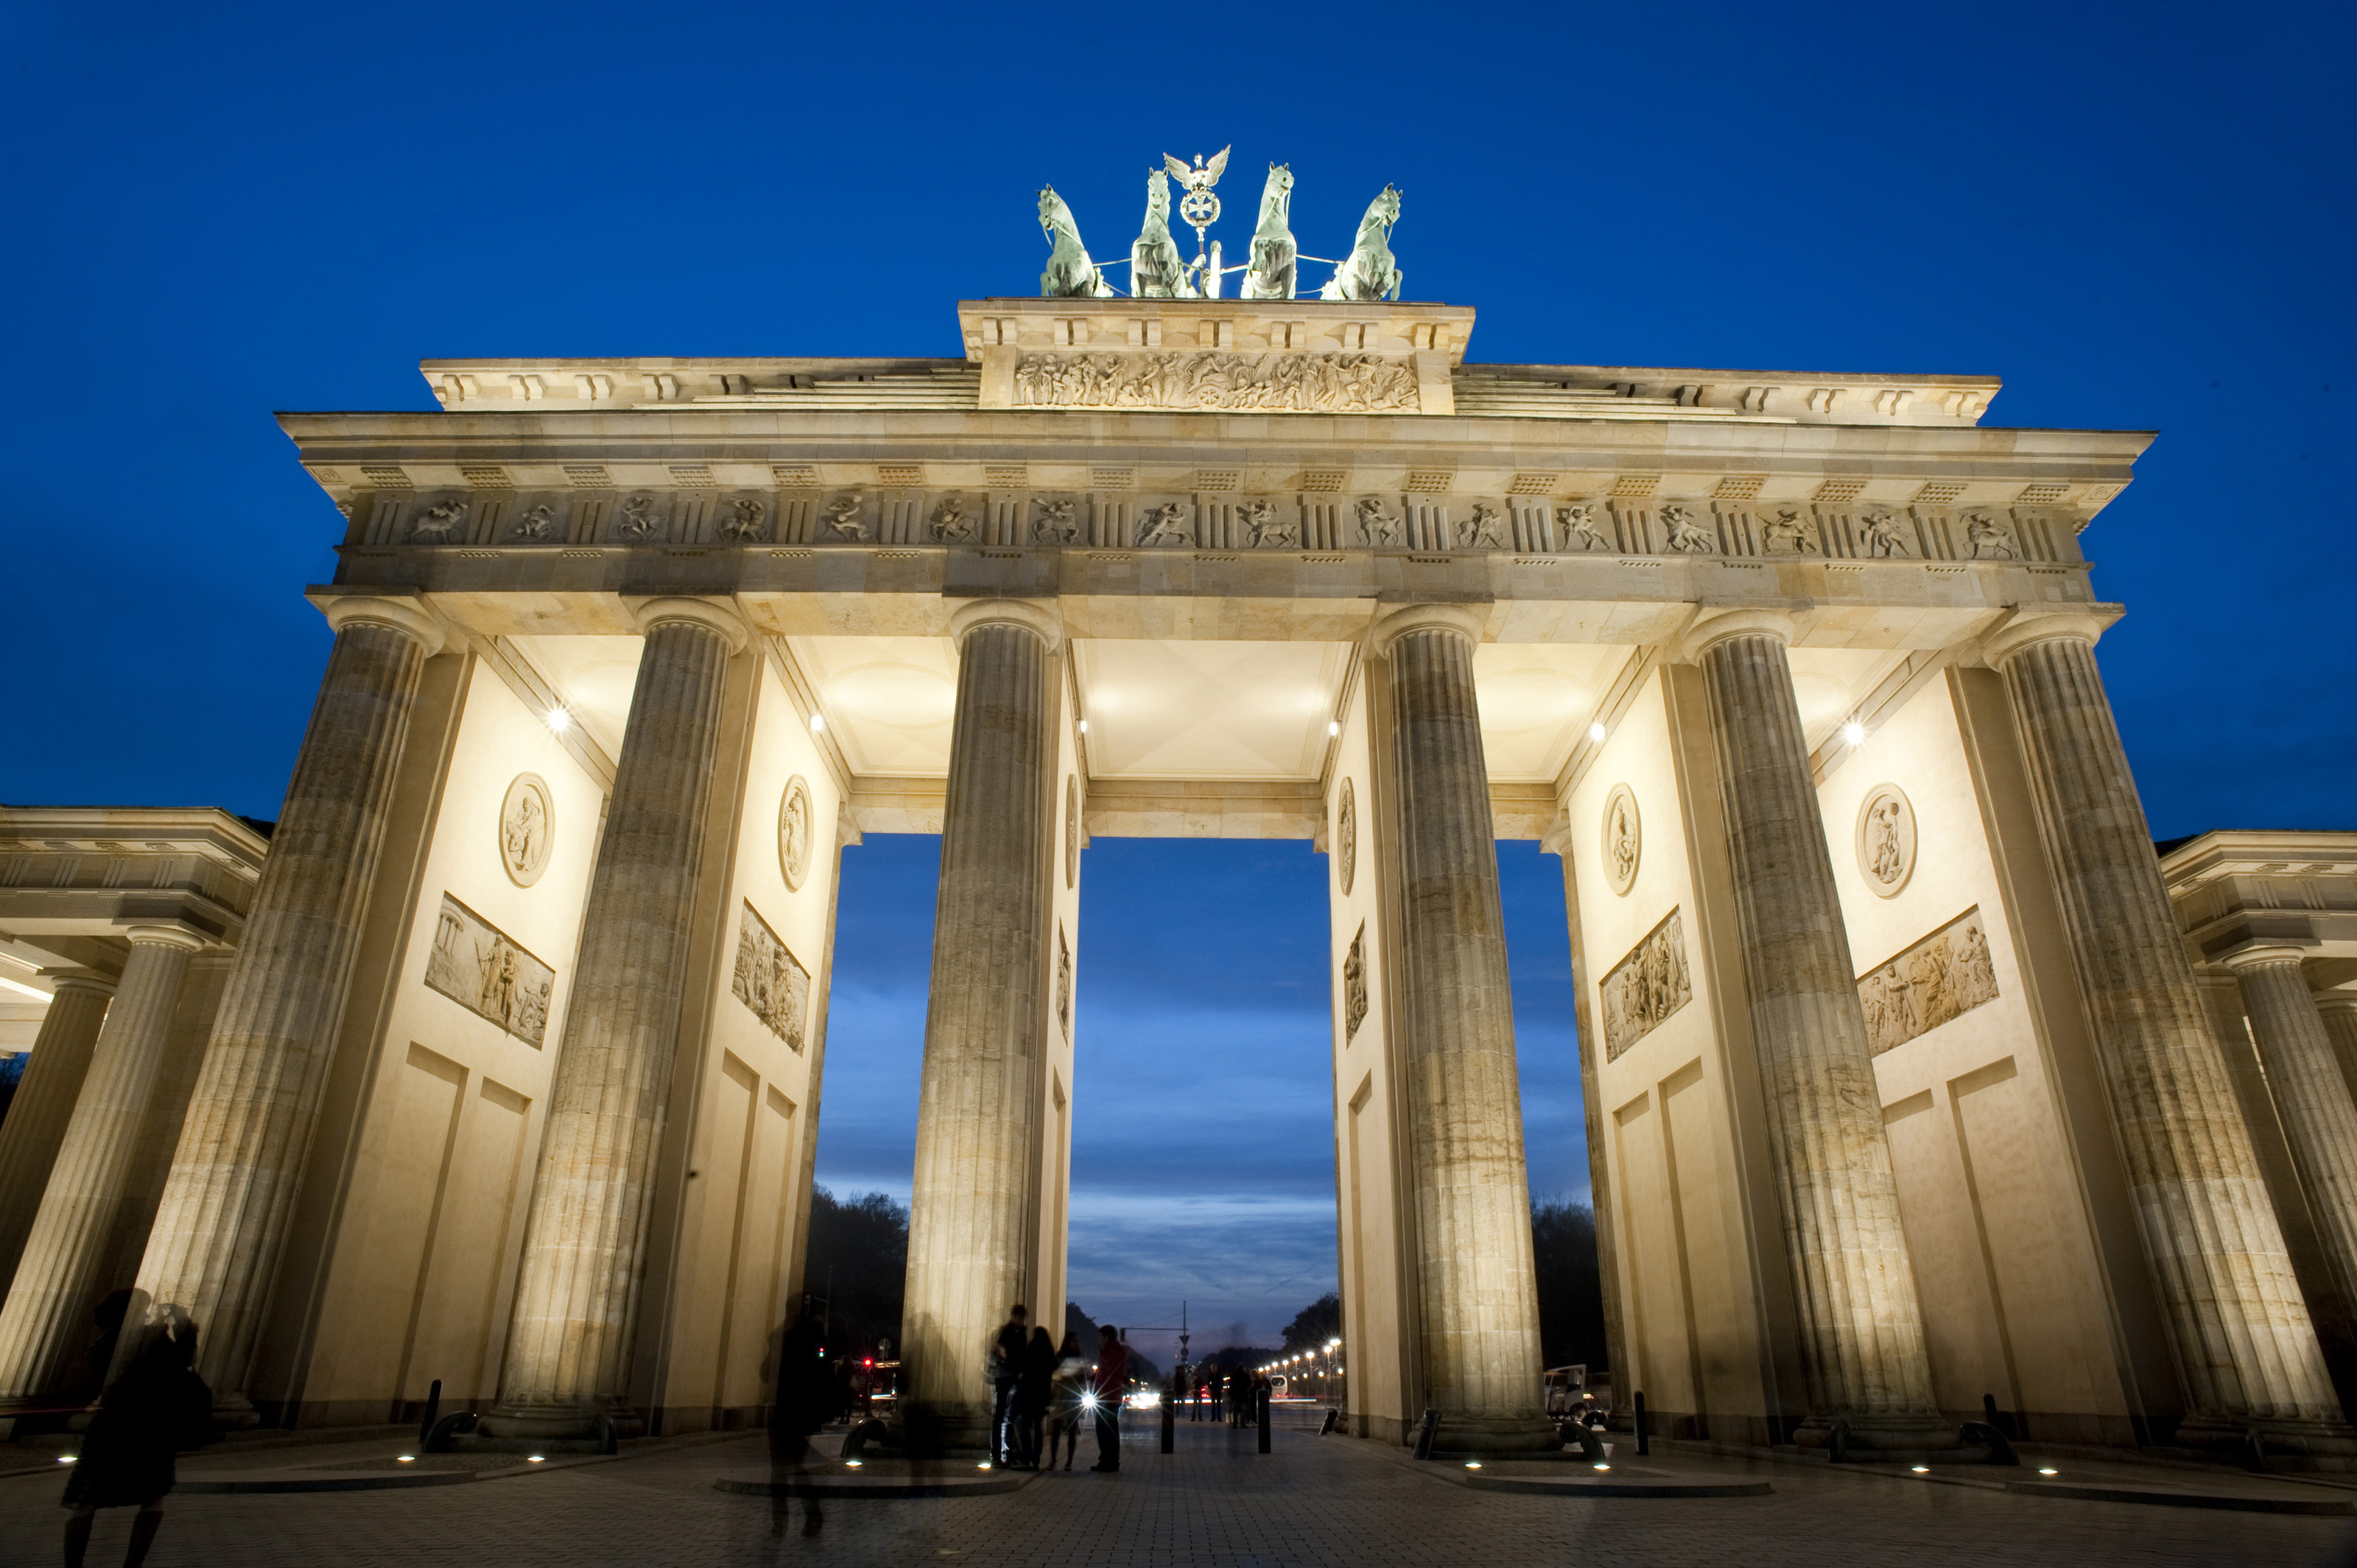 brandenburg gate at night - photo #22